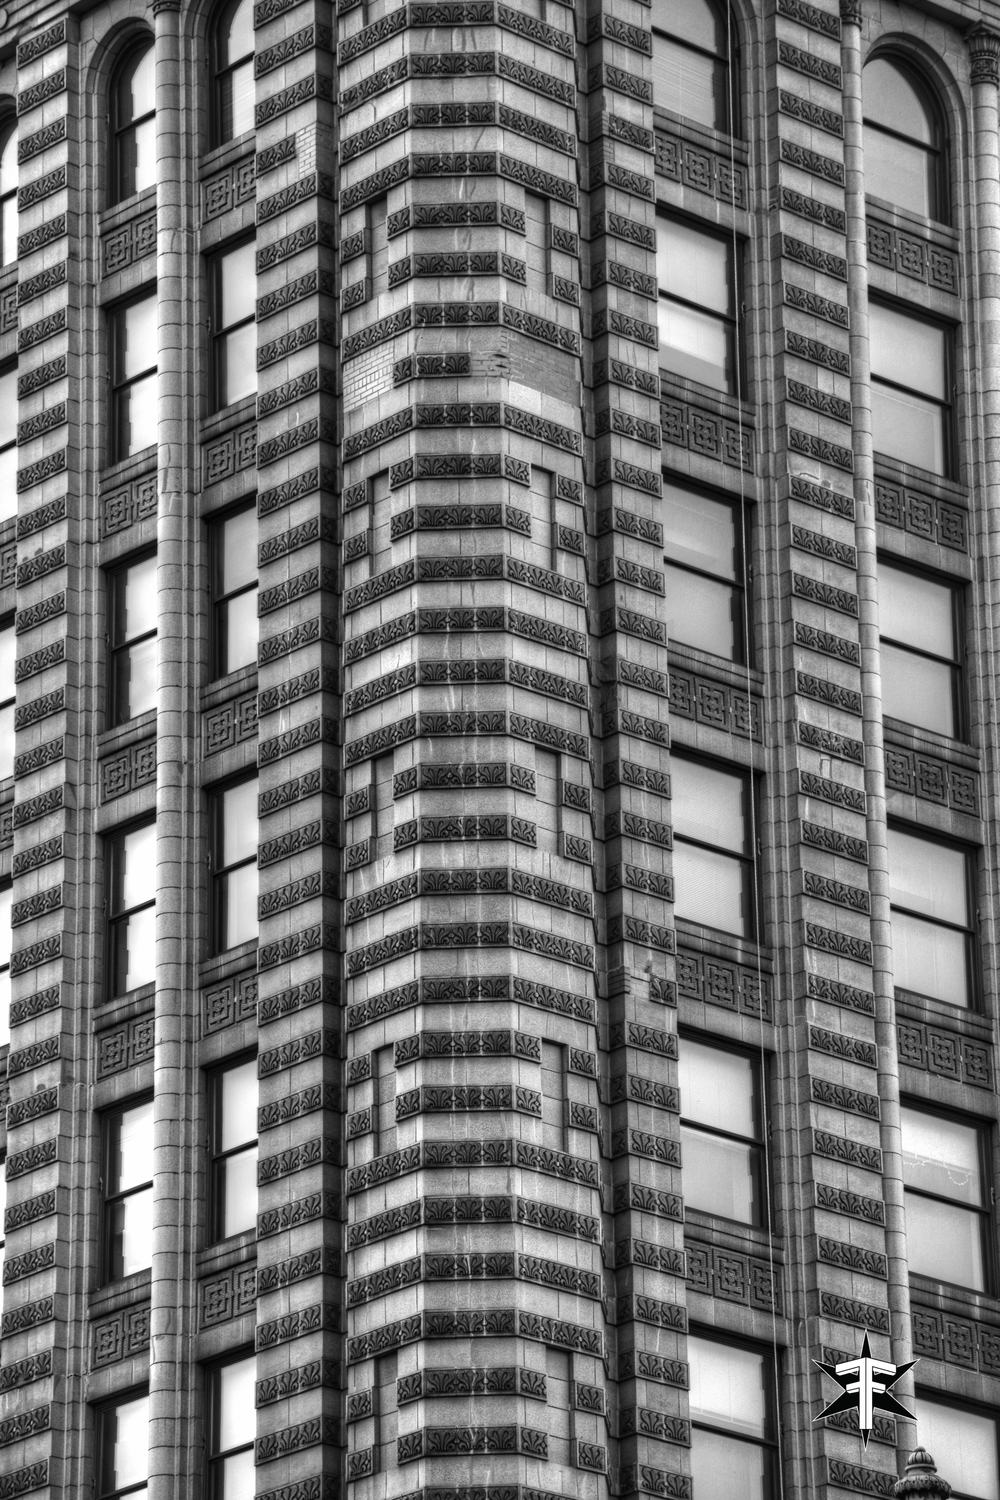 chicago architecture eric formato photography design arquitectura architettura buildings skyscraper skyscrapers-112.jpg